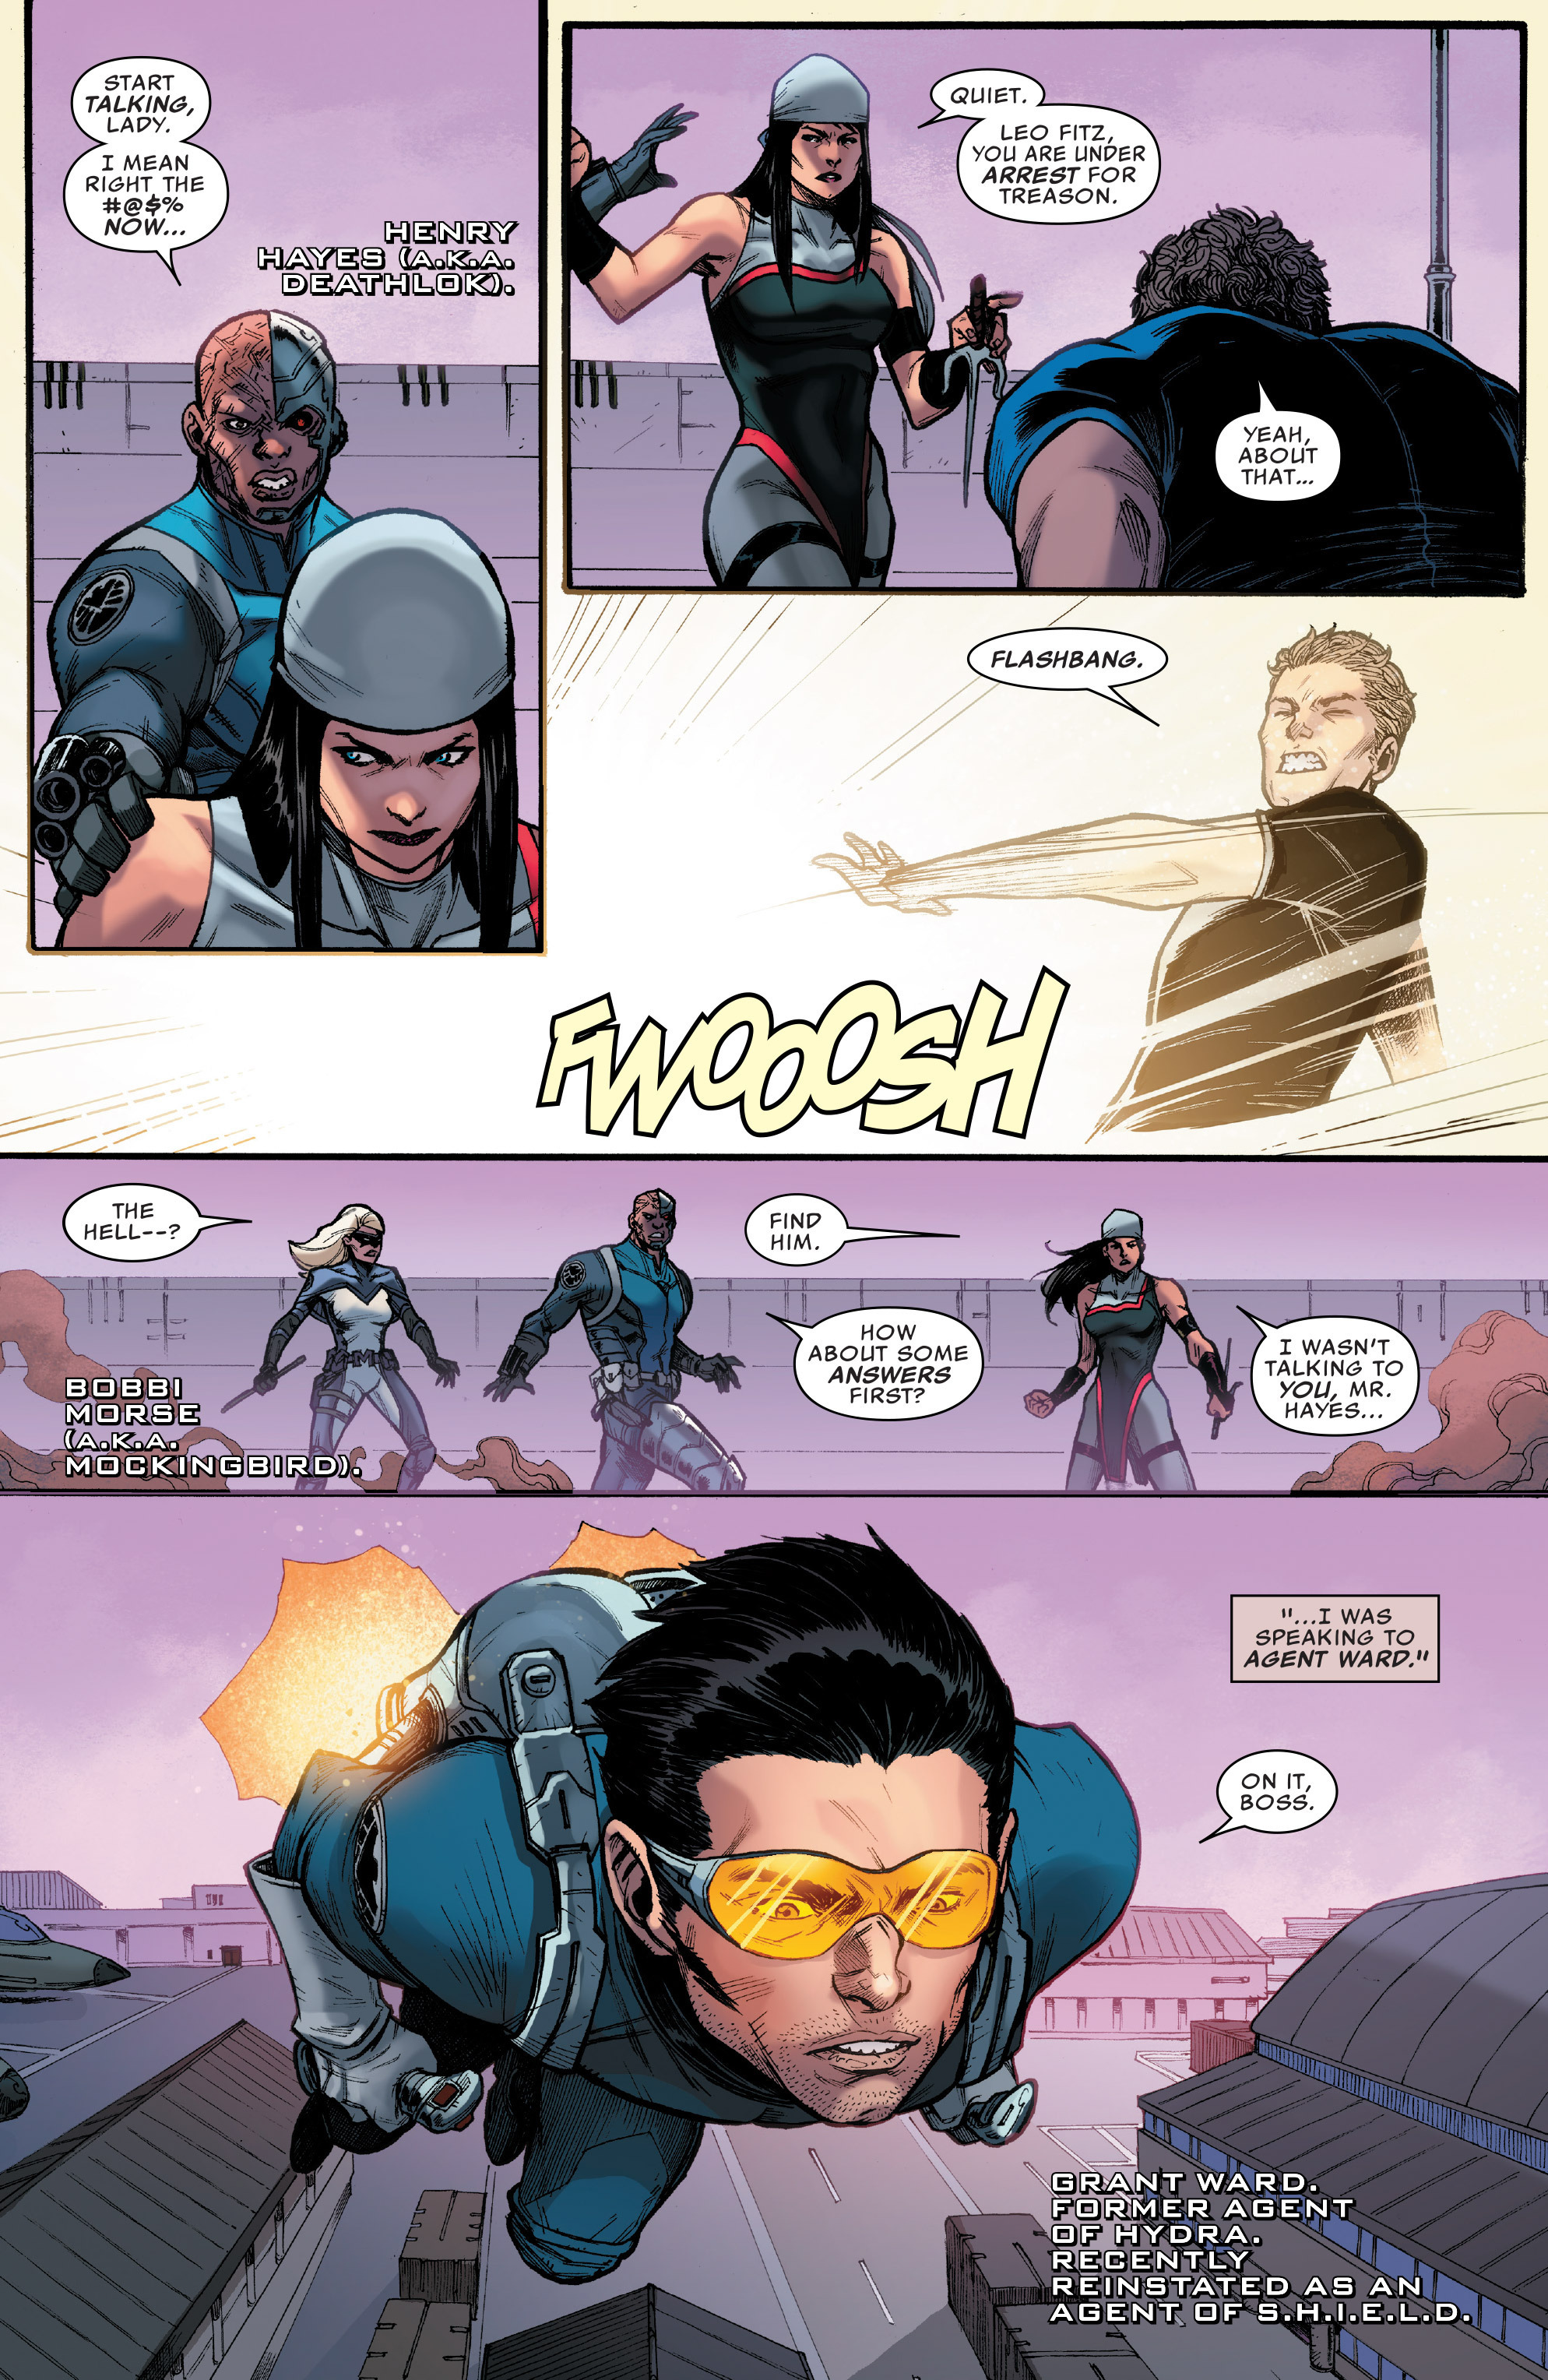 Read online Agents of S.H.I.E.L.D. comic -  Issue #9 - 3